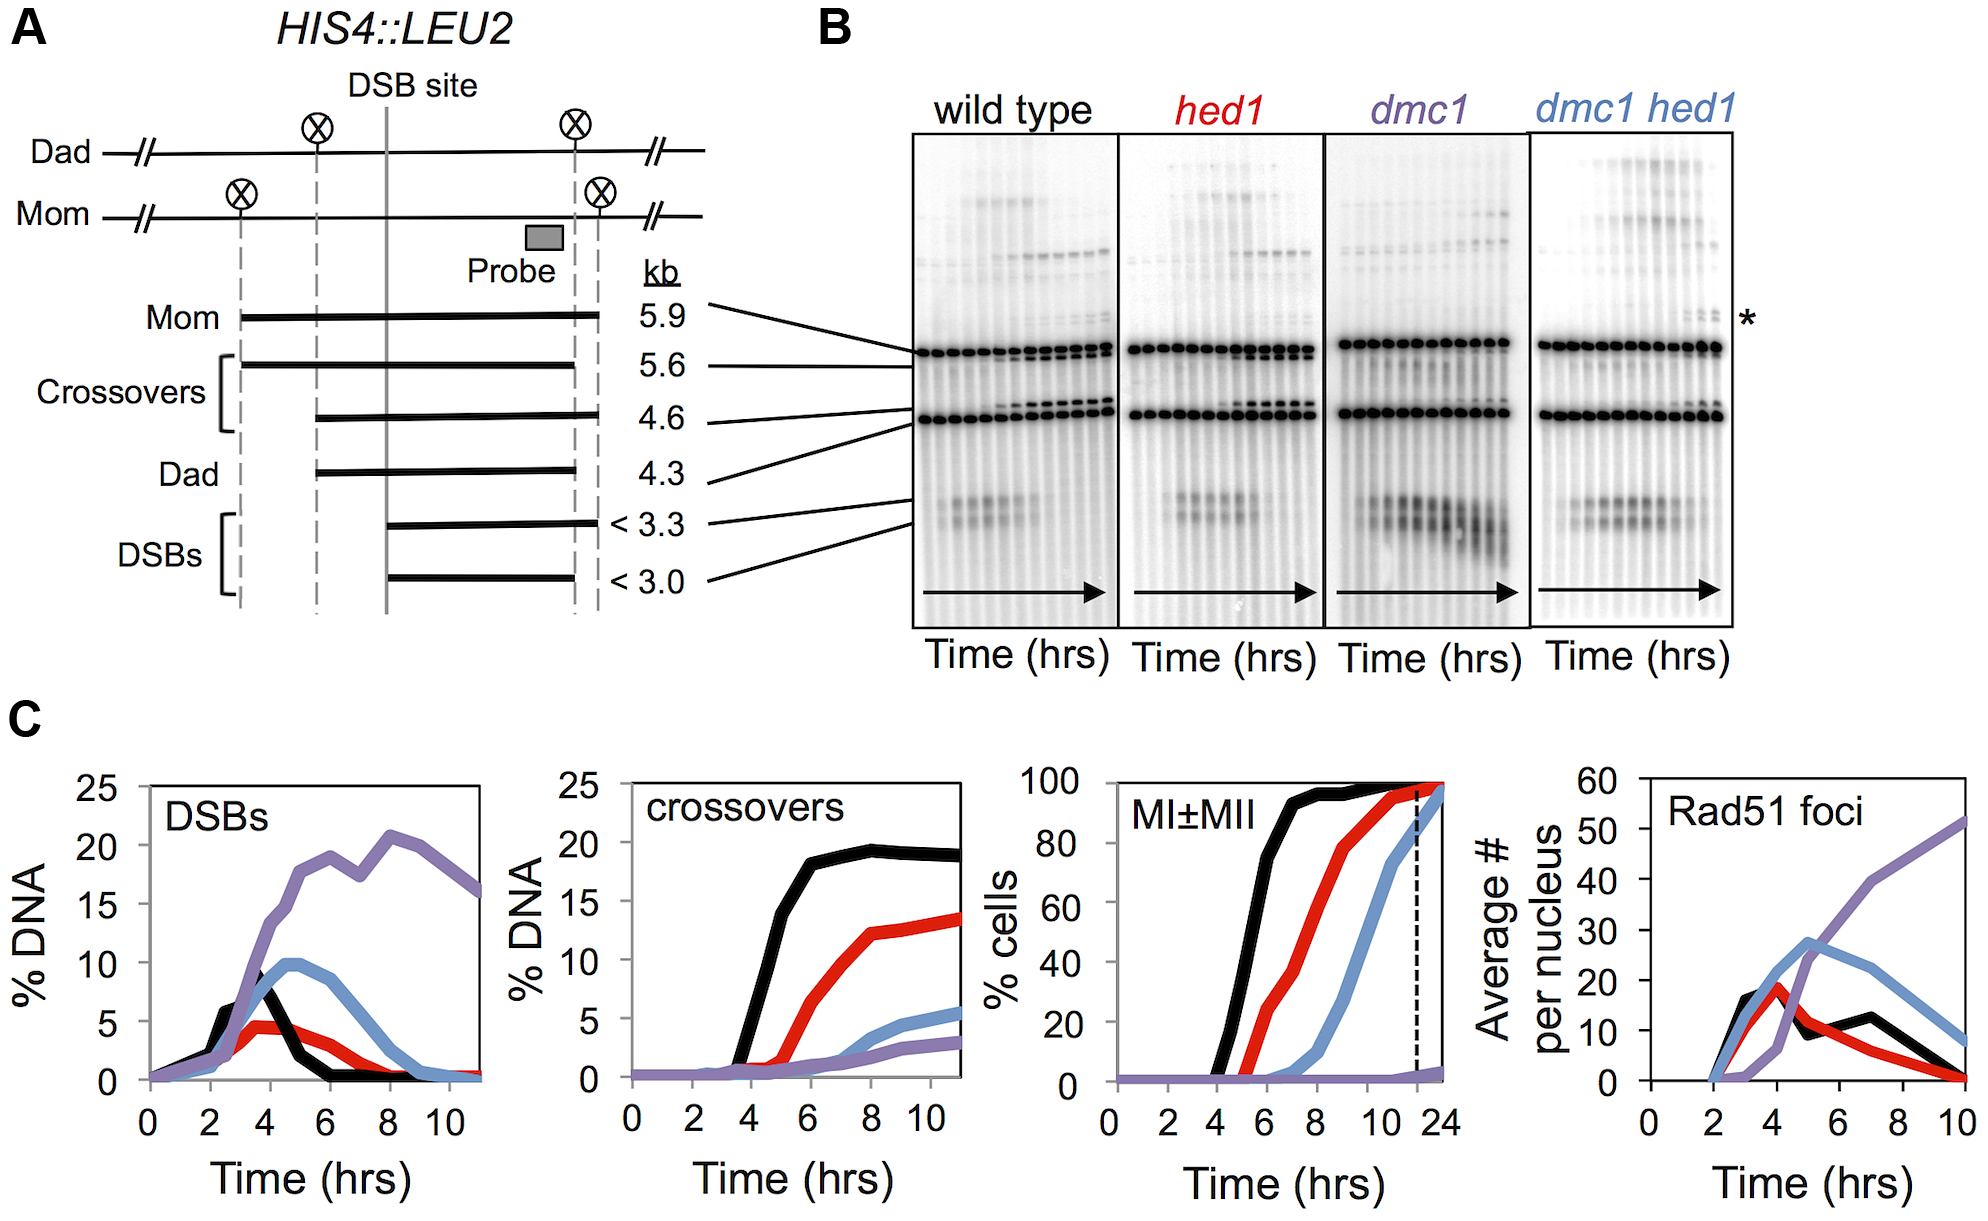 Analysis of DSBs and crossovers in <i>hed1</i> and <i>dmc1 hed1</i> mutants.